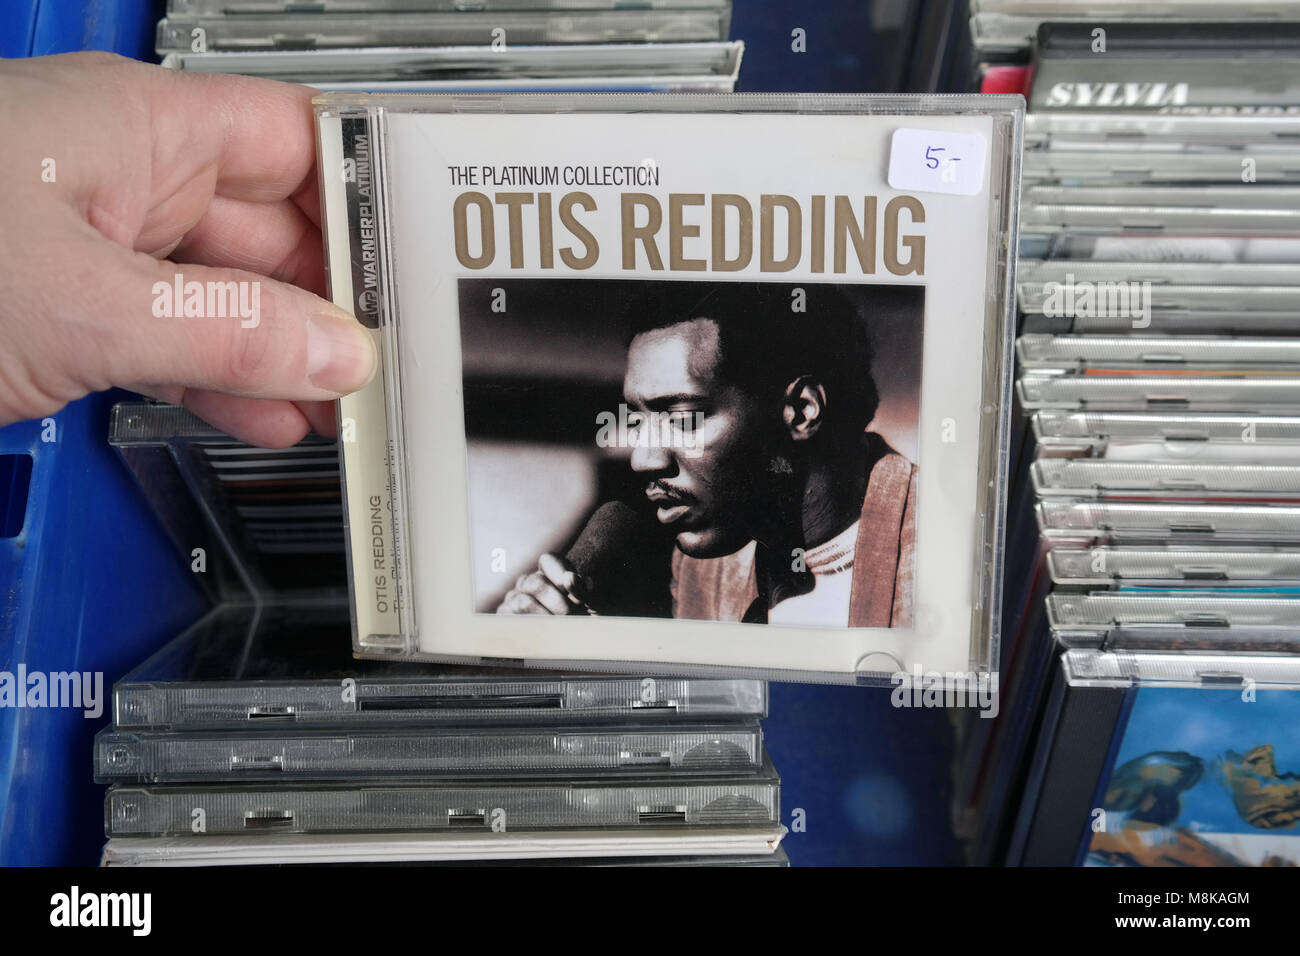 CD of the American singer, songwriter, record producer, arranger, and talent scout: Otis Redding - Stock Image